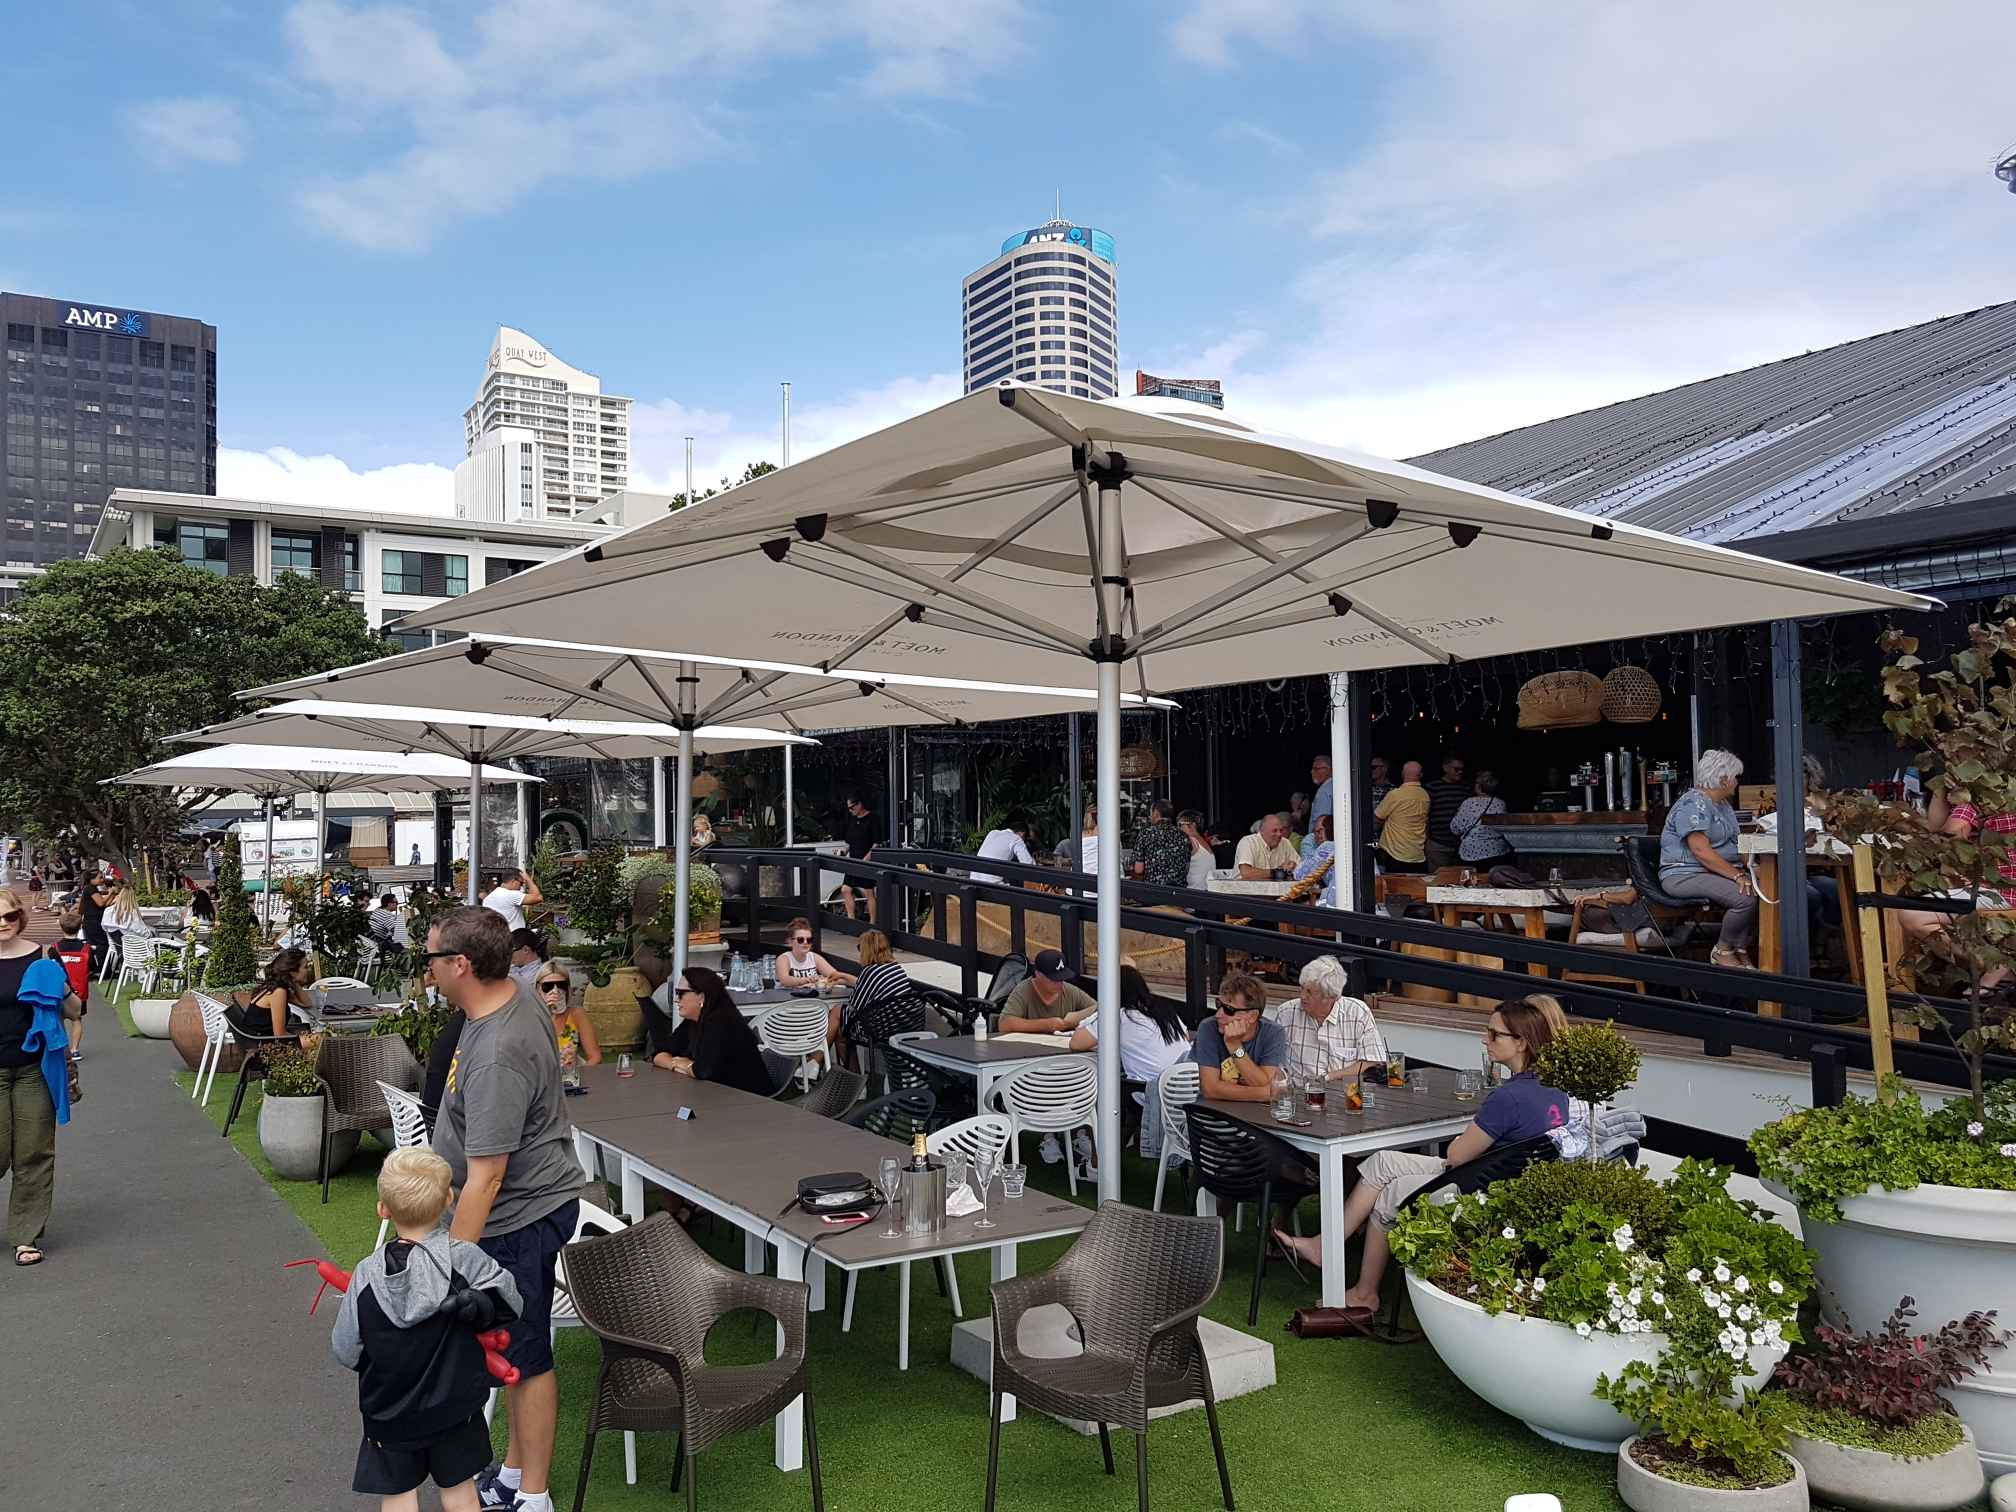 The Best Commercial Umbrellas for Bars and Restaurants